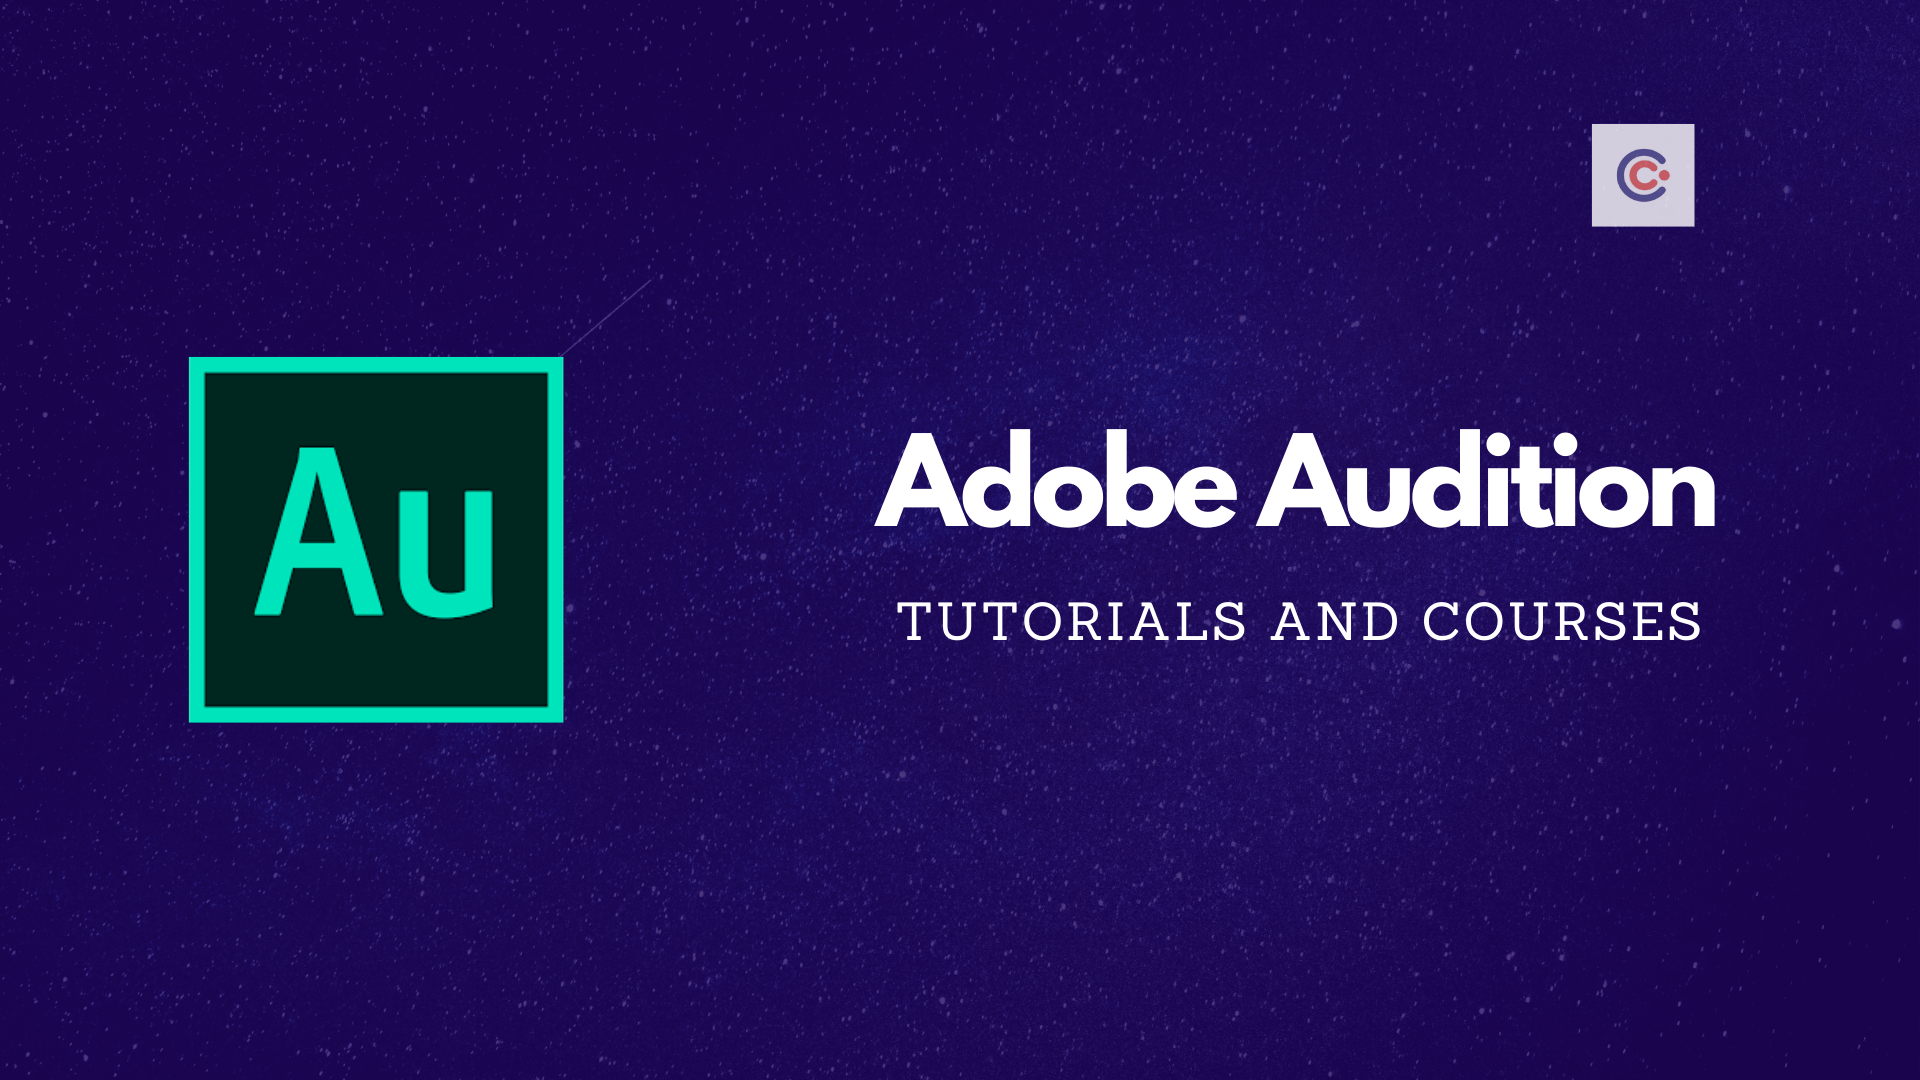 9 Best Adobe Audition Tutorials and Courses - Learn Adobe Audition Online